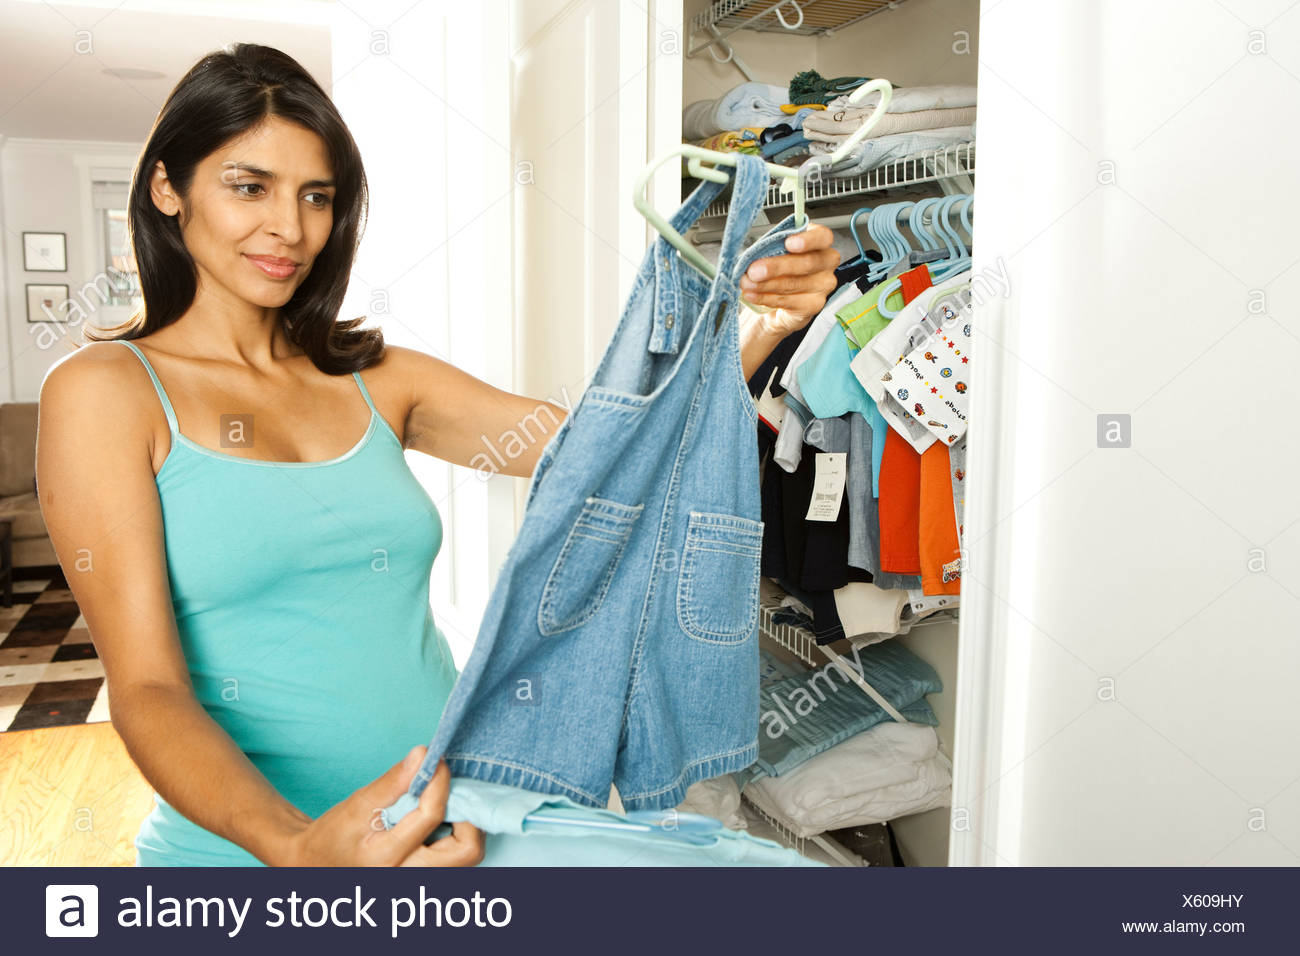 8123dca0d Pregnant woman holding baby clothes Stock Photo: 279061383 - Alamy